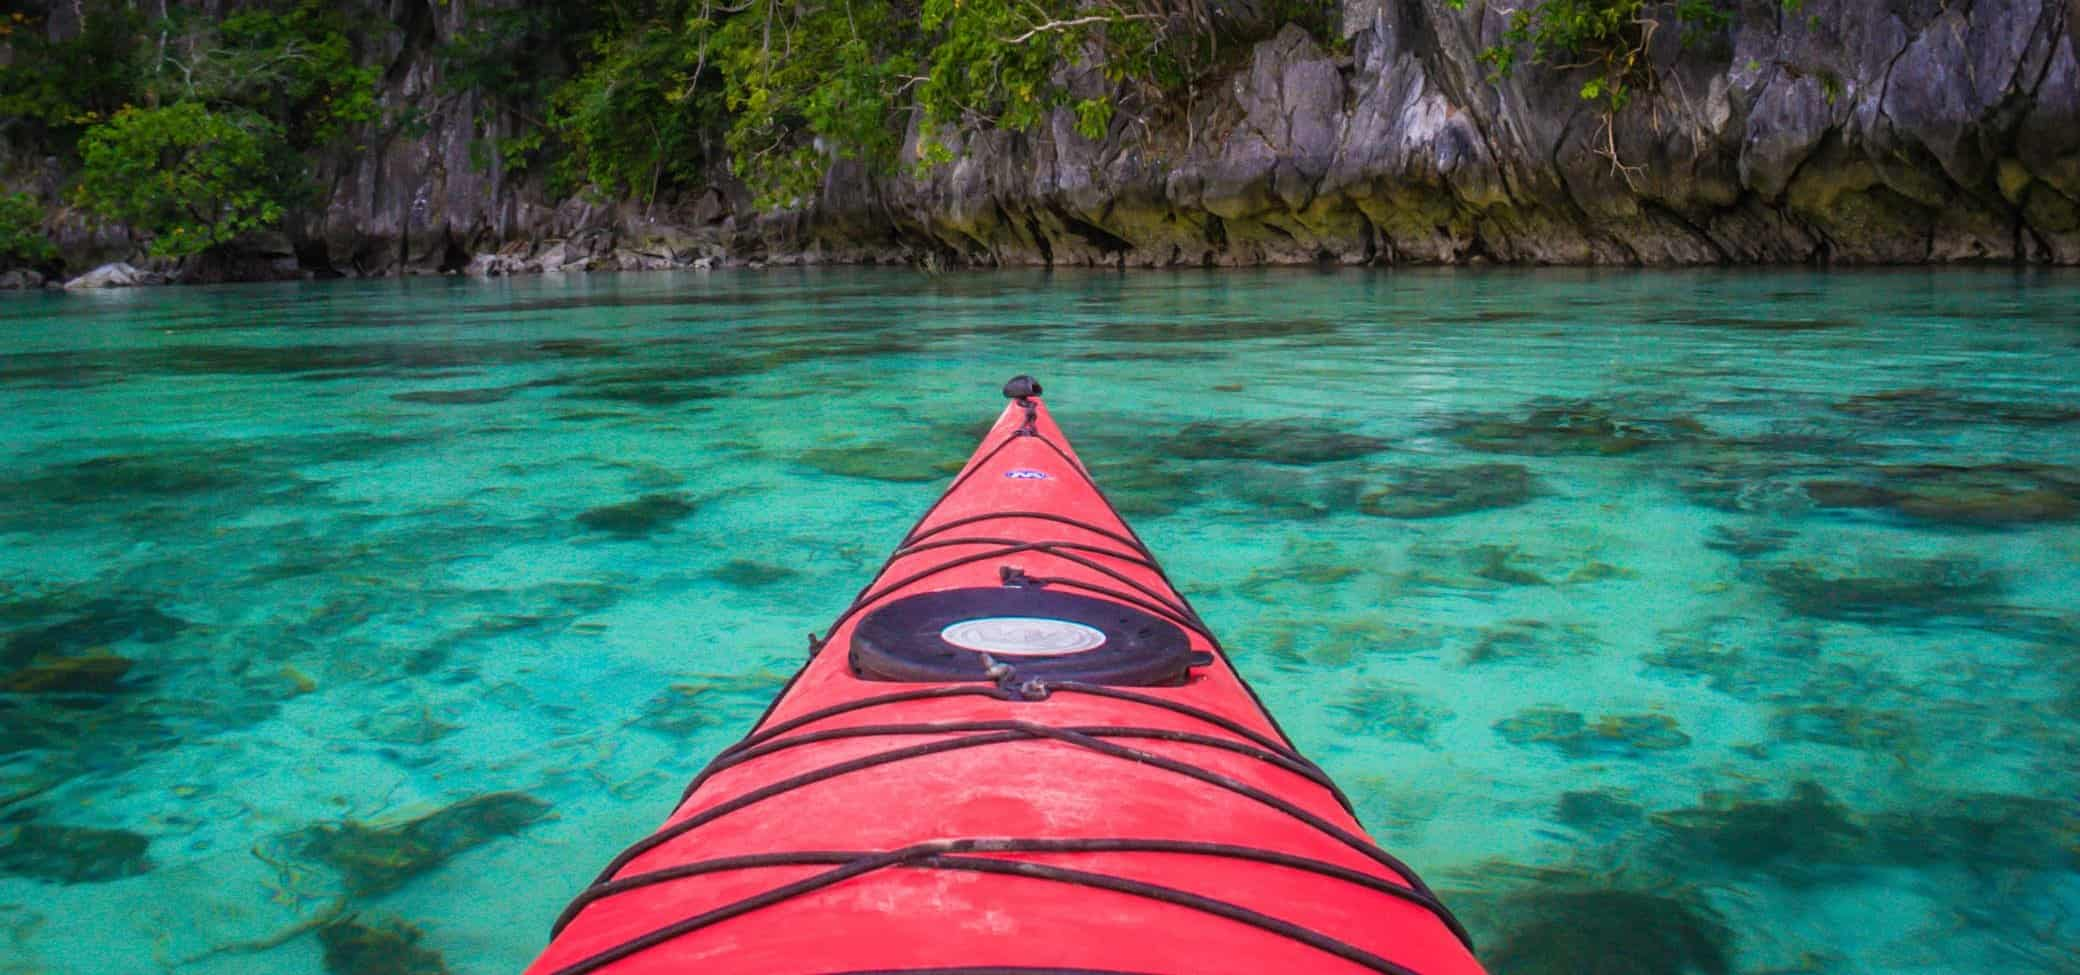 Kayaking Philippines Divergent Travelers